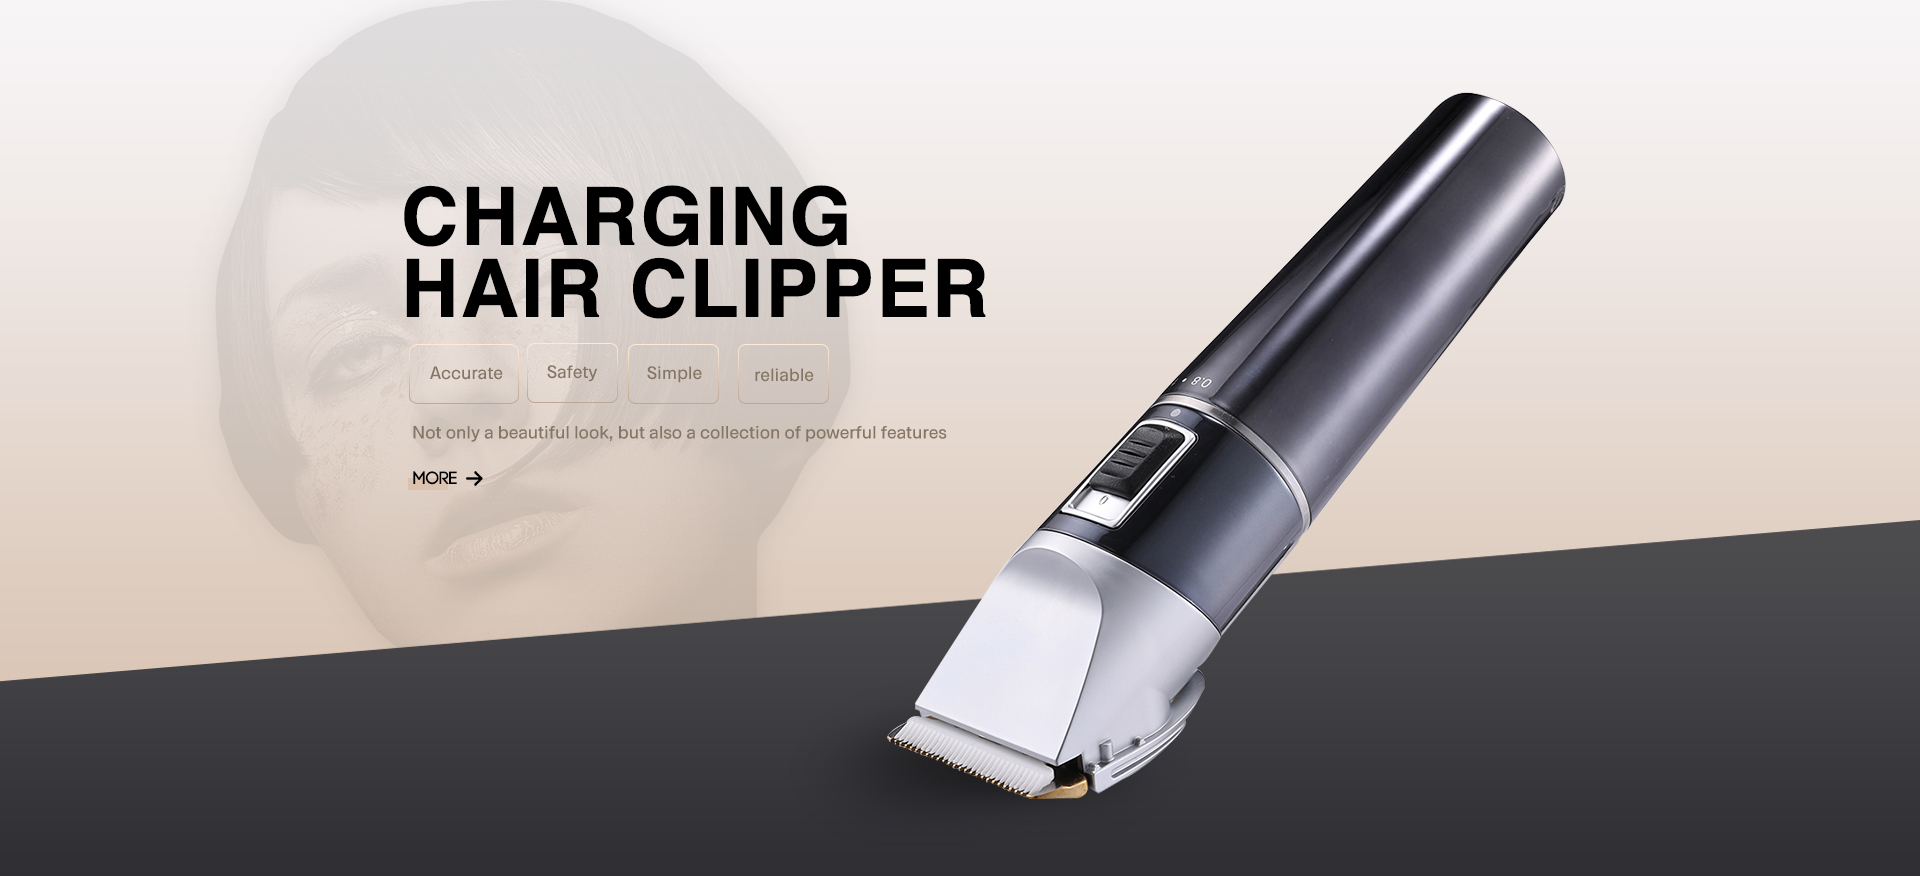 CHARGING  HAIR CLIPPER